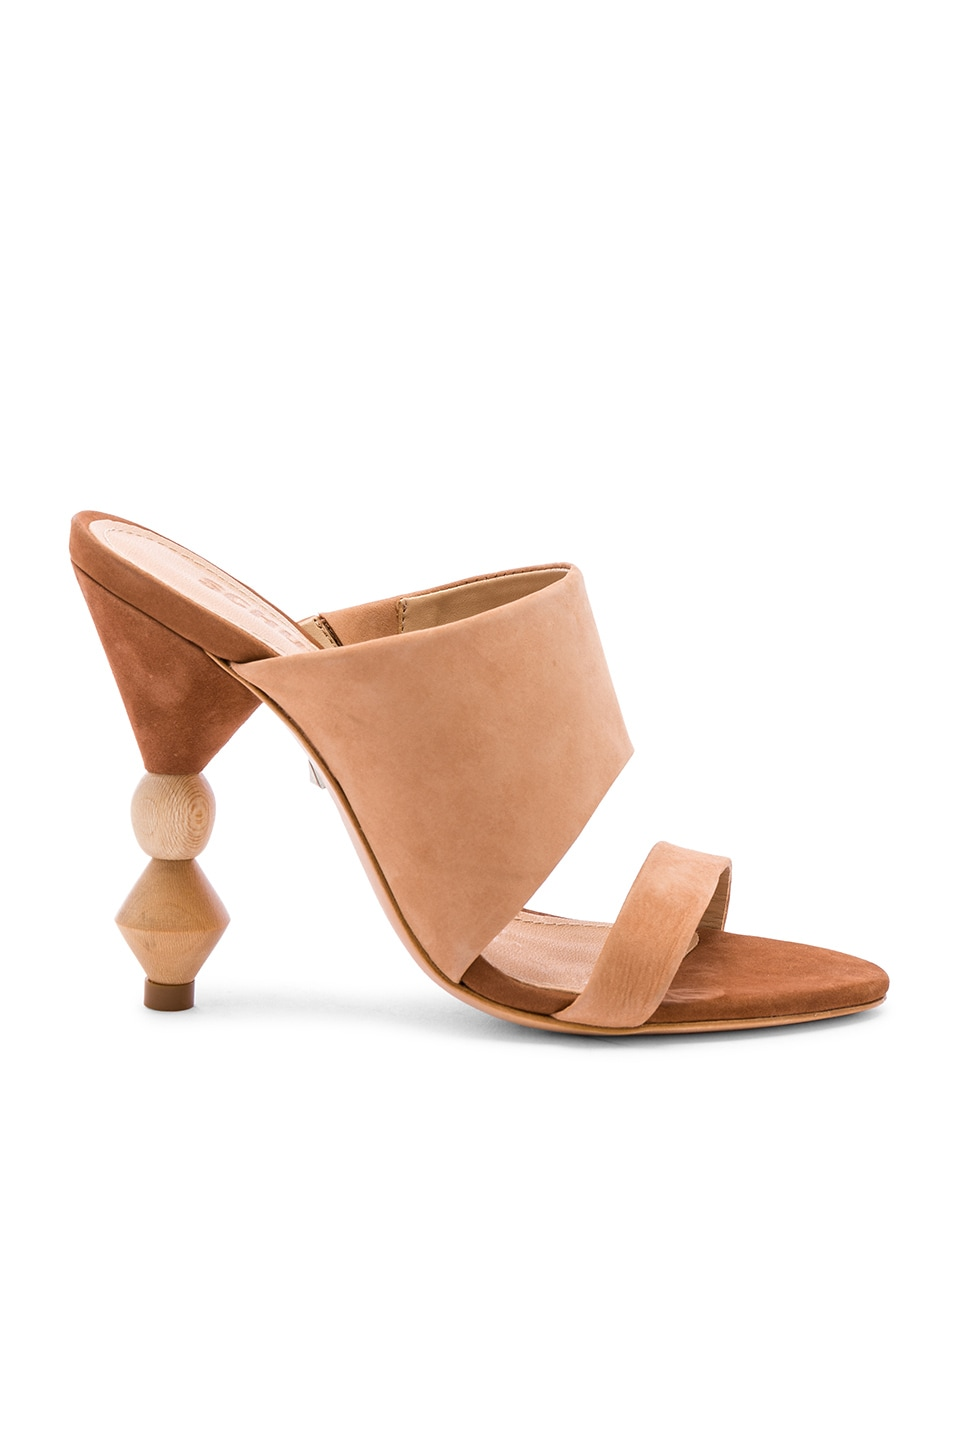 Schutz Tosca Heel in Honey Beige